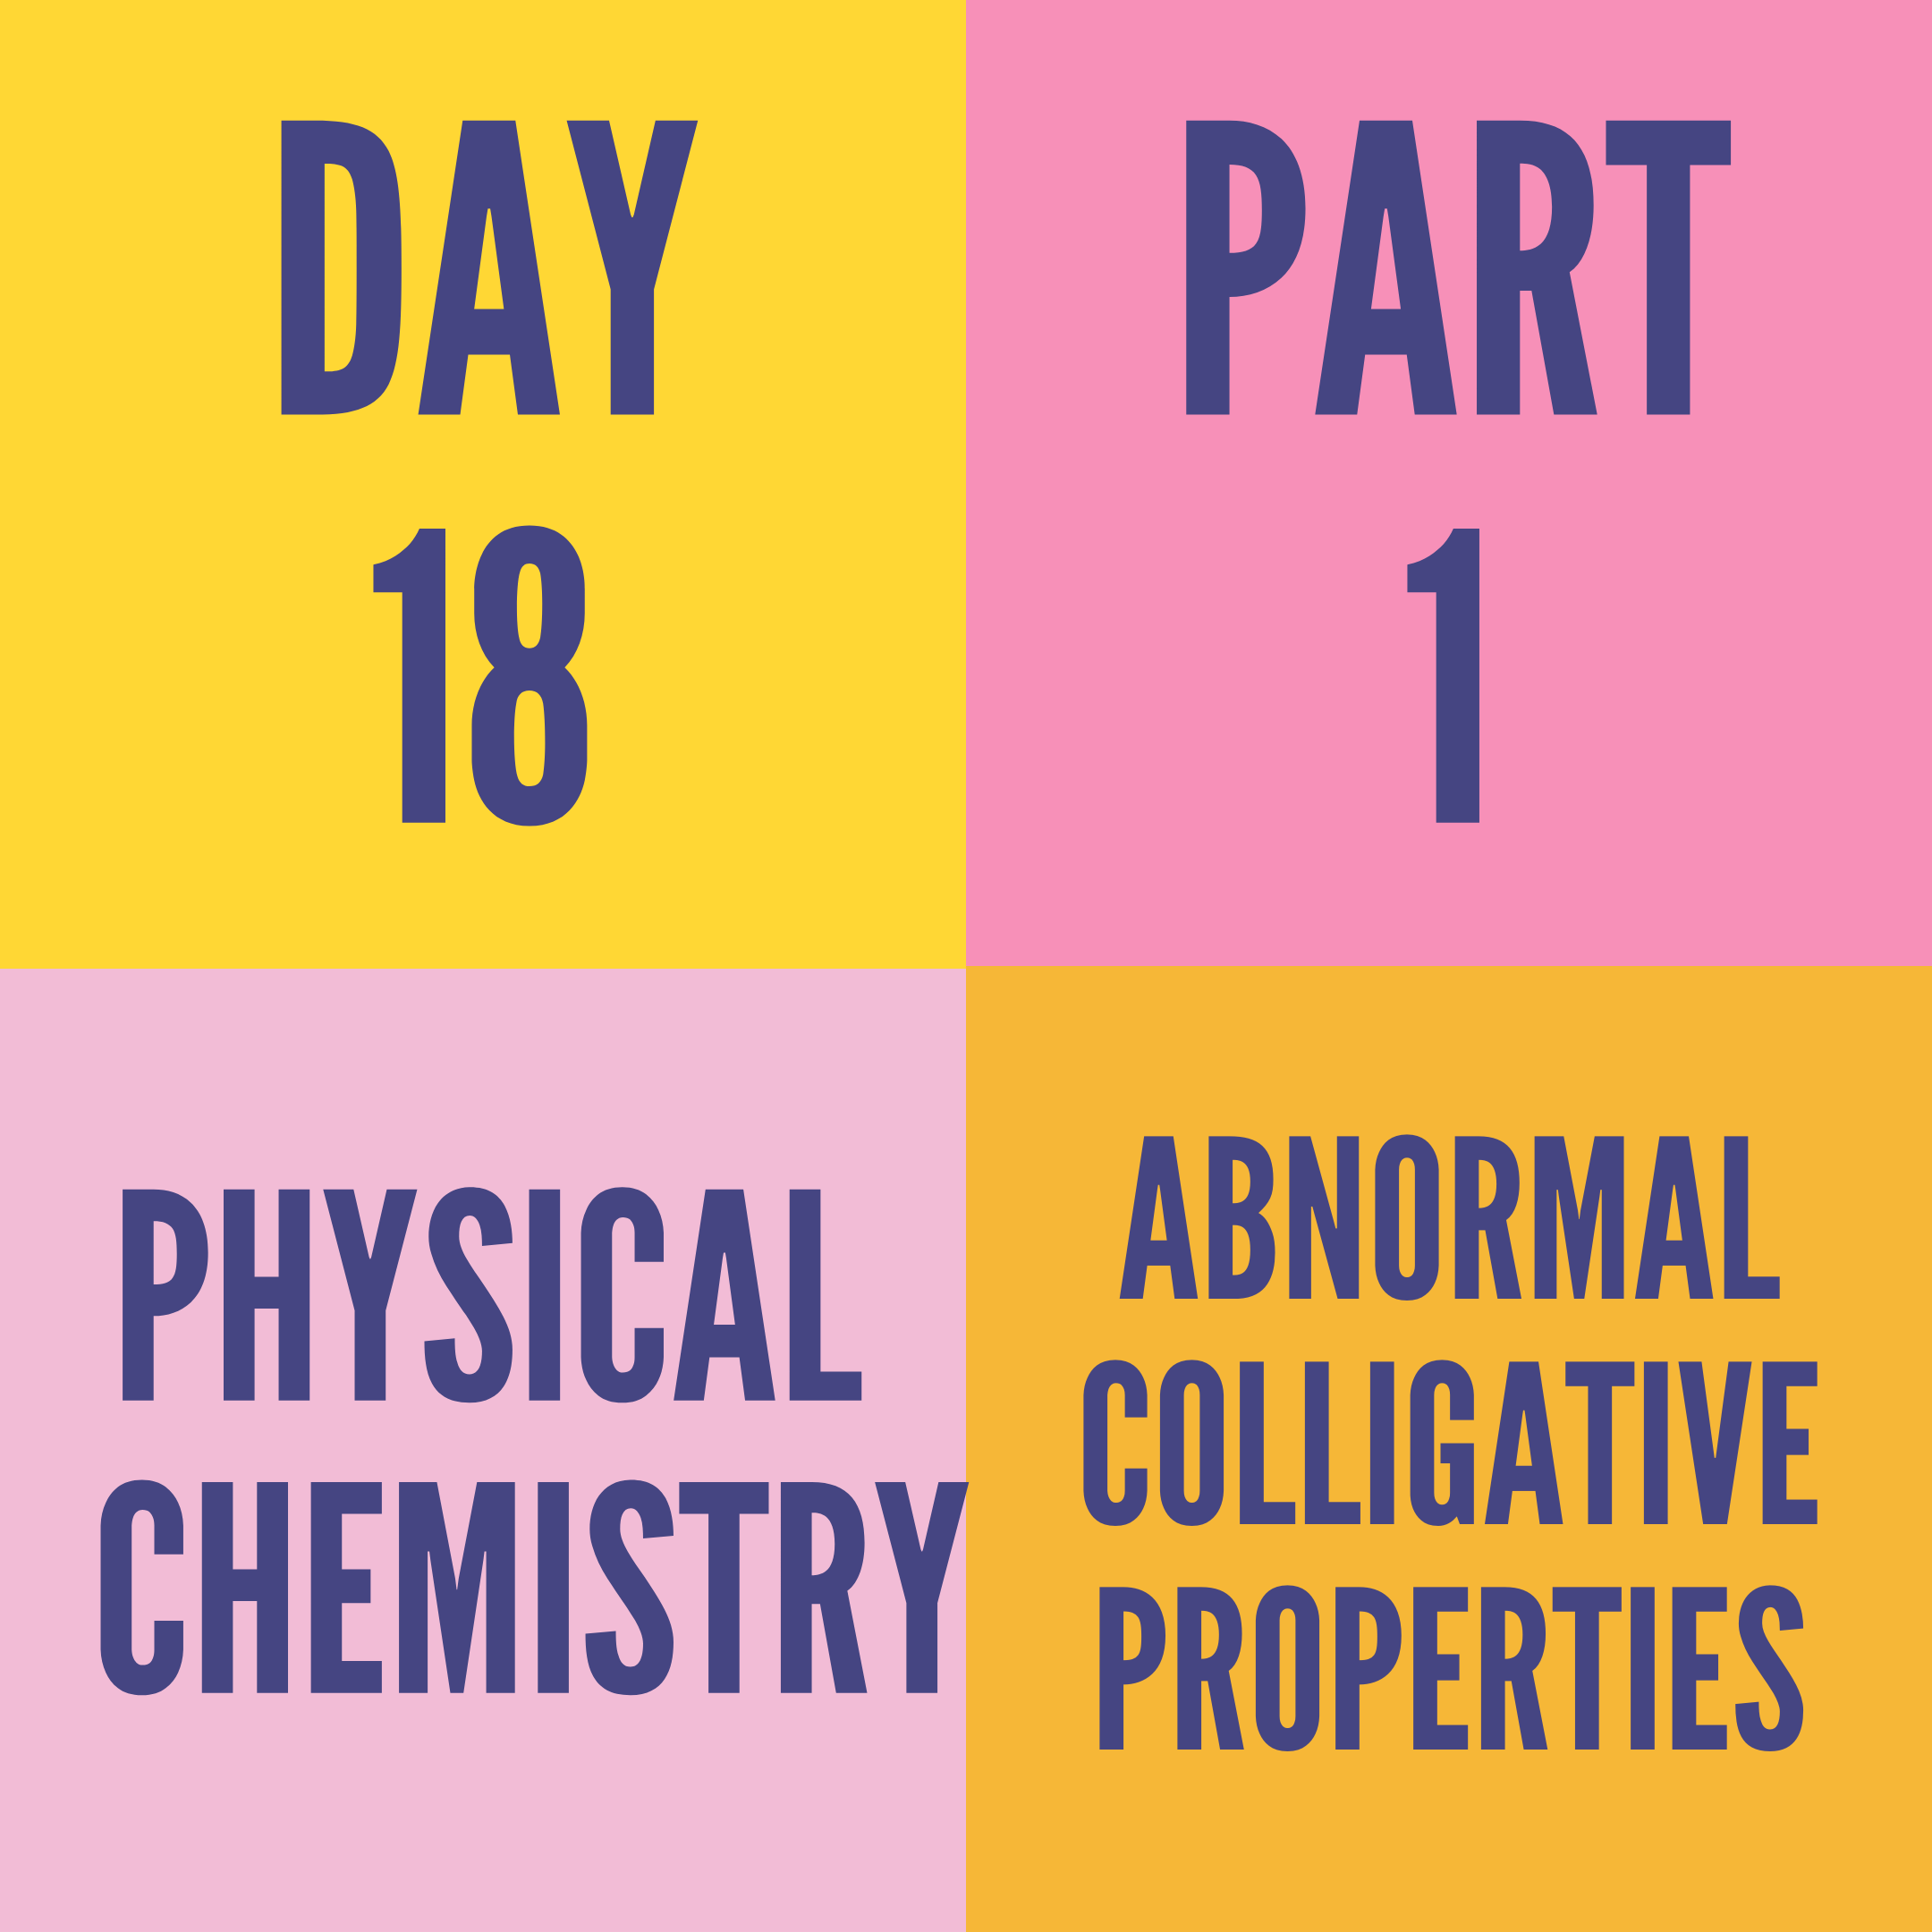 DAY-18 PART-1 ABNORMAL COLLIGATIVE PROPERTIES